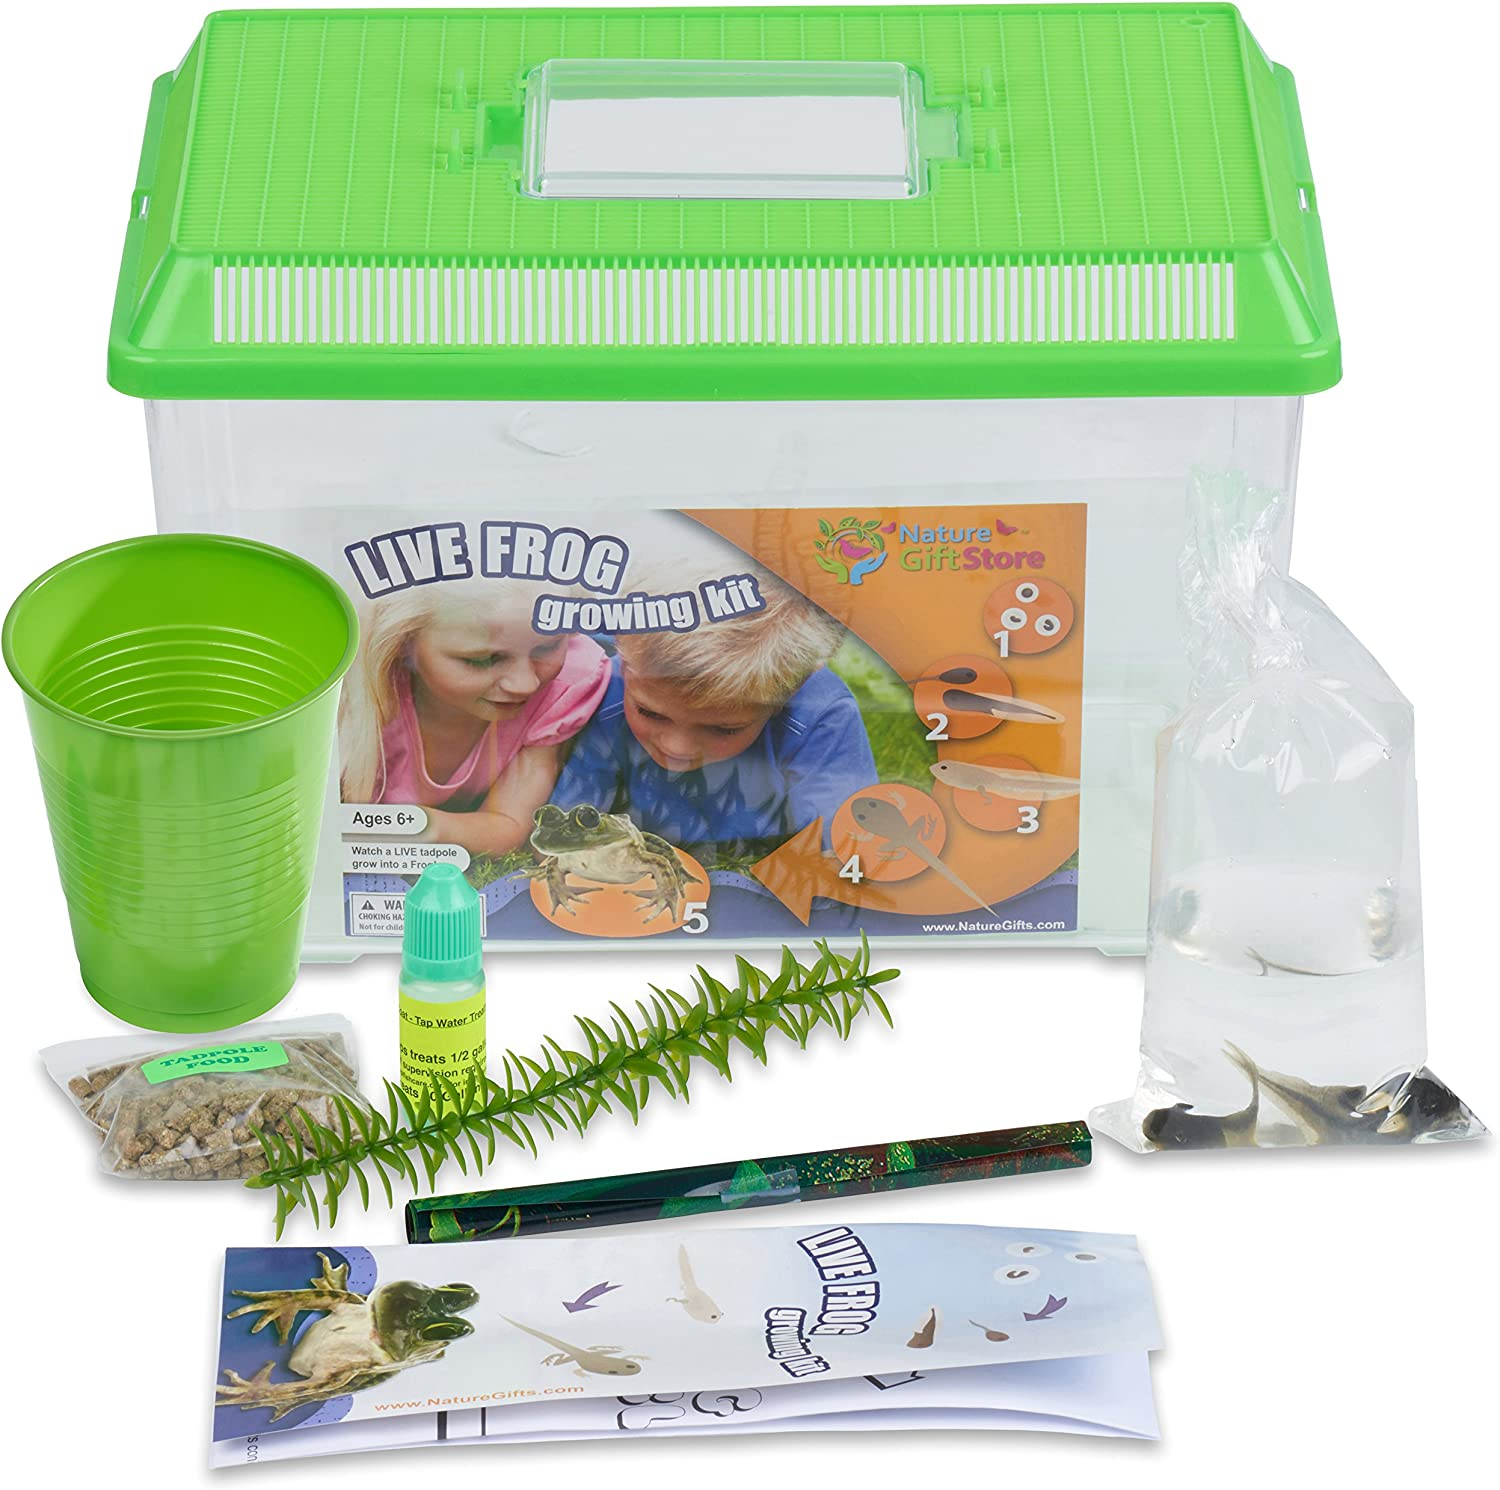 Nature Gift Store Tadpole to Frog Growing Kit with 2 Live Tadpoles Sent with Kit